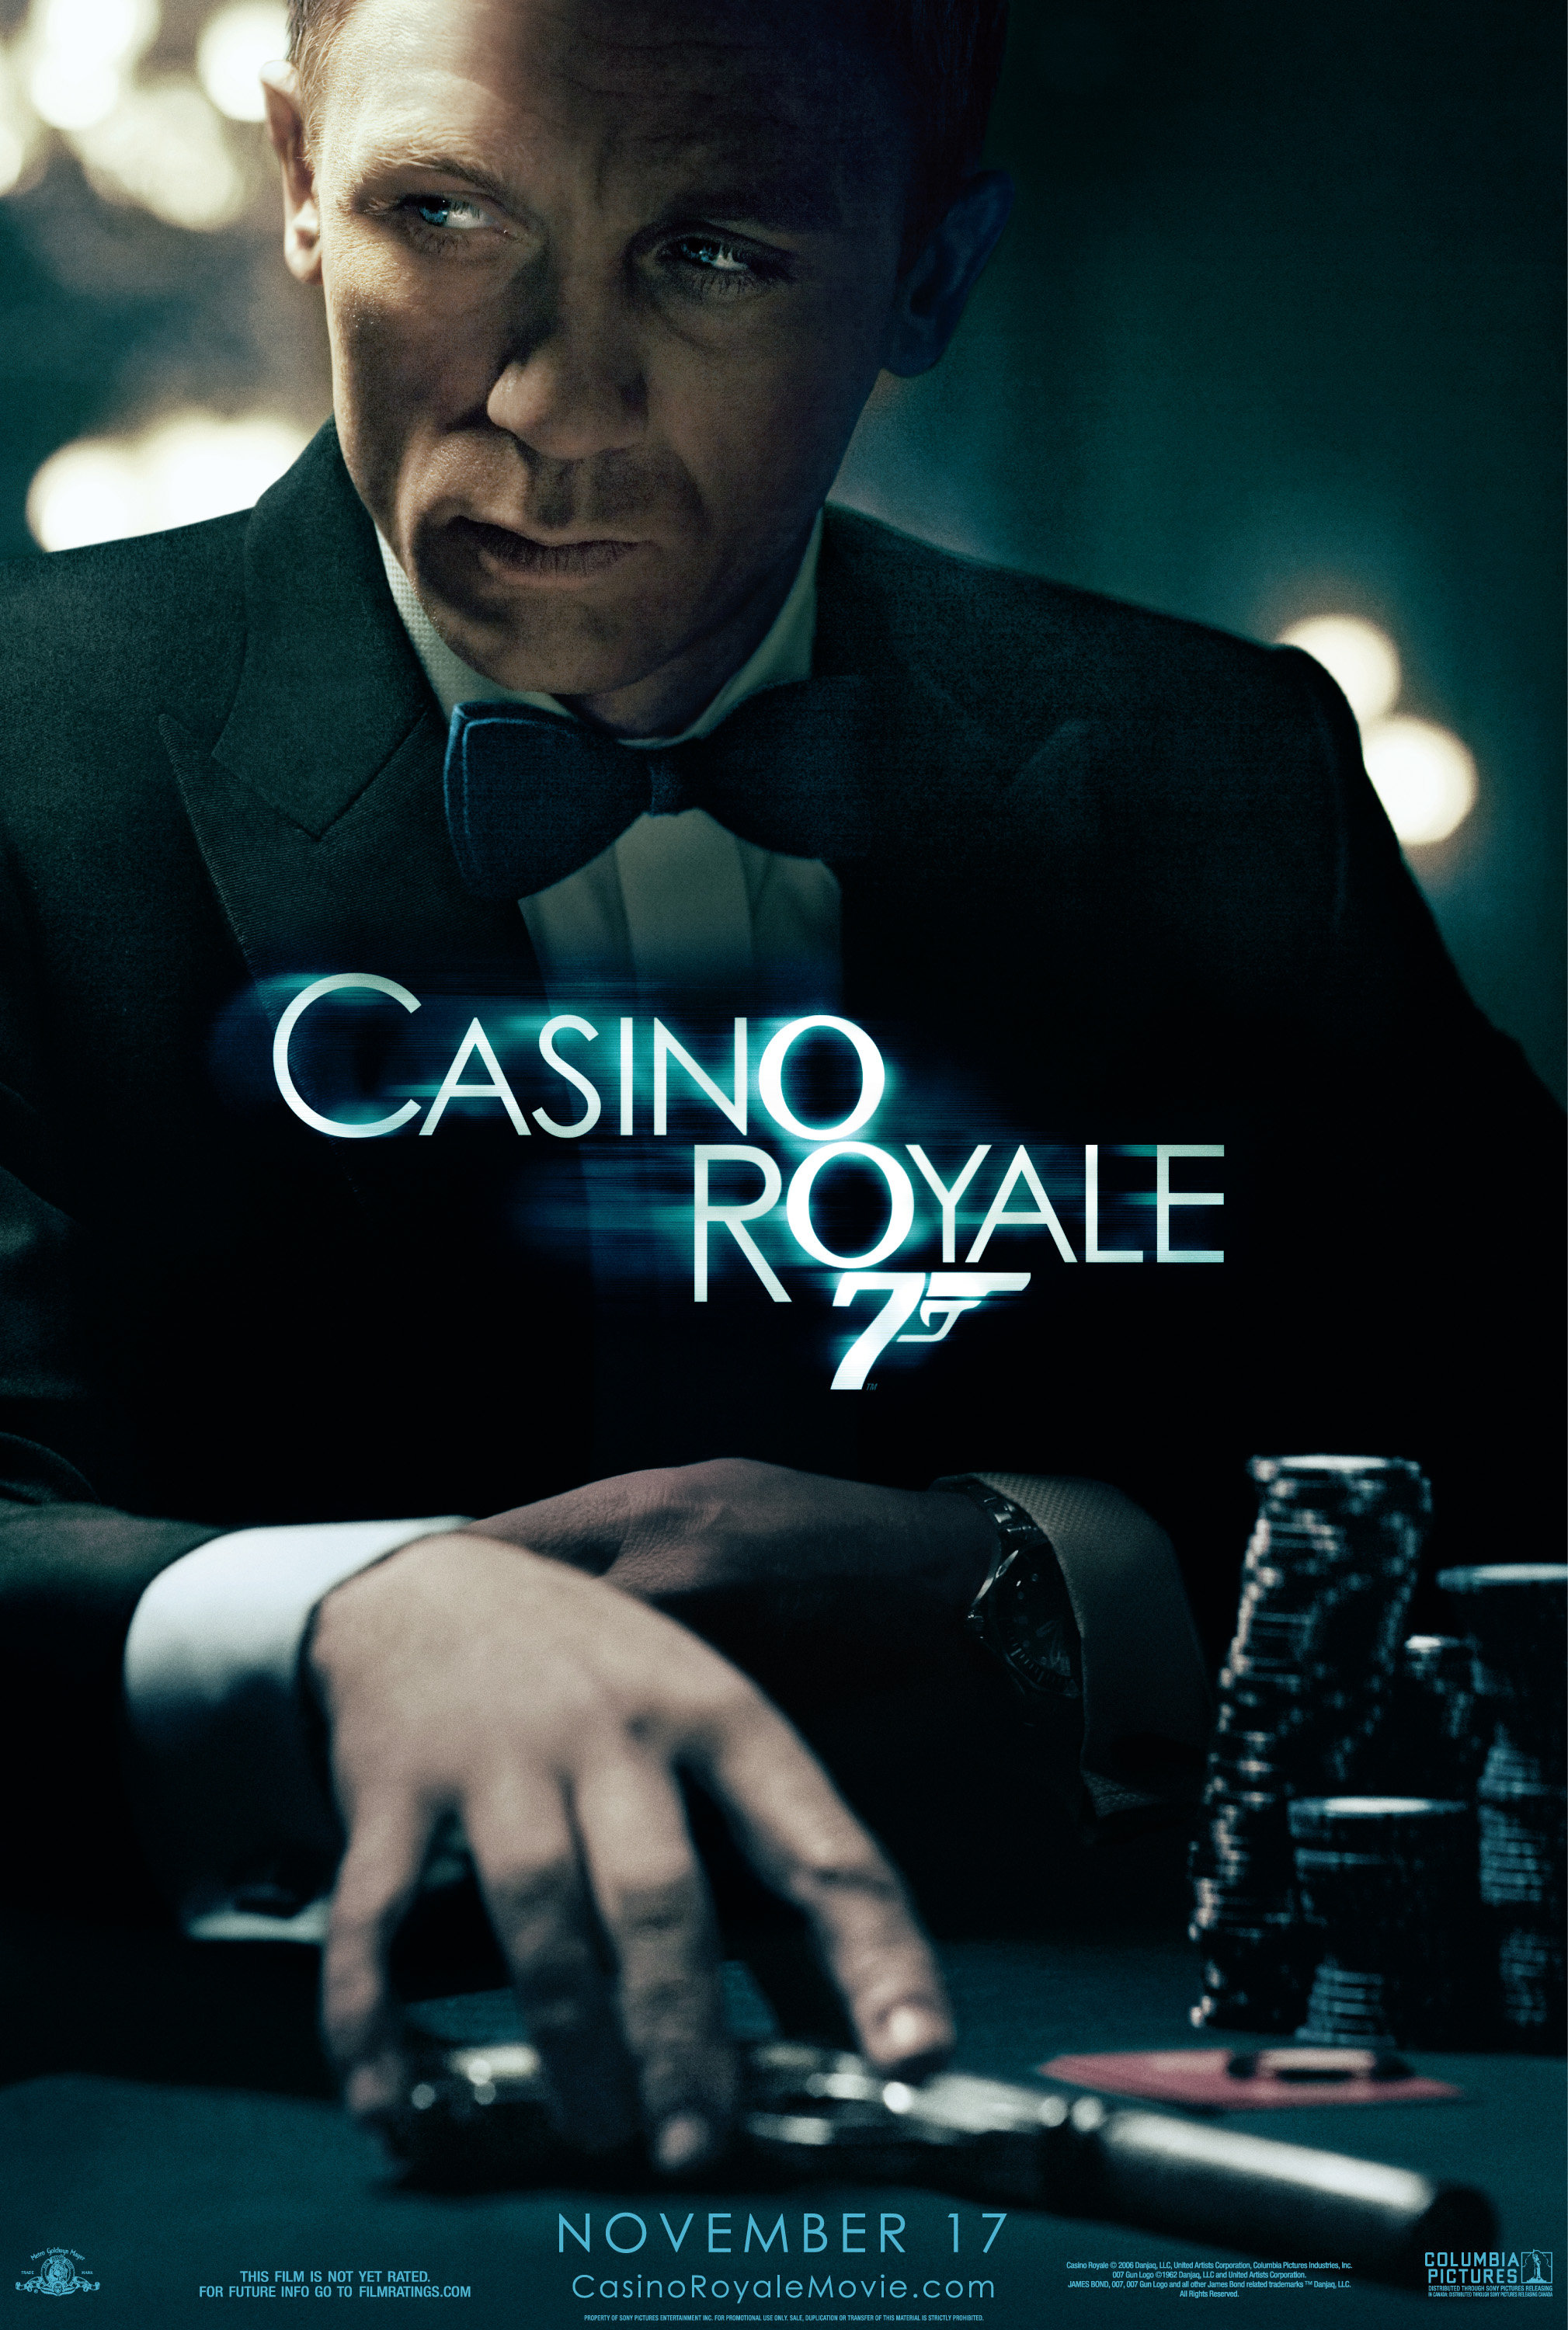 007 - Cassino Royale | Wiki James Bond | Fandom